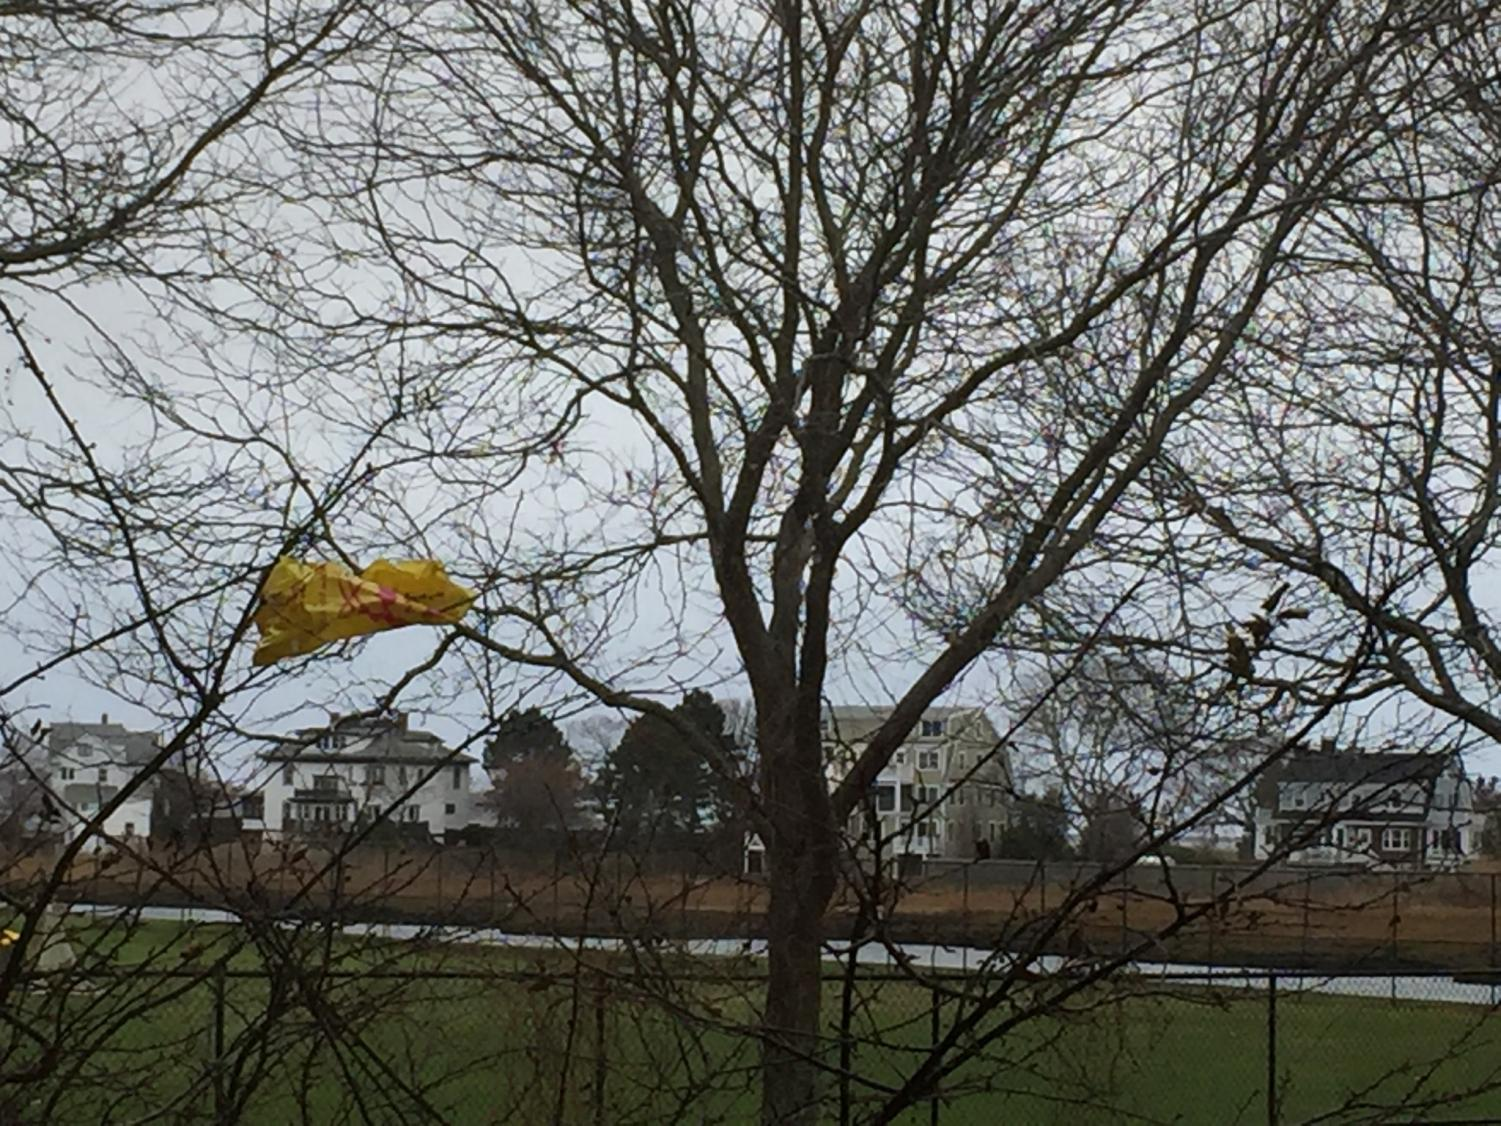 A plastic bag hangs from a tree outside GHS